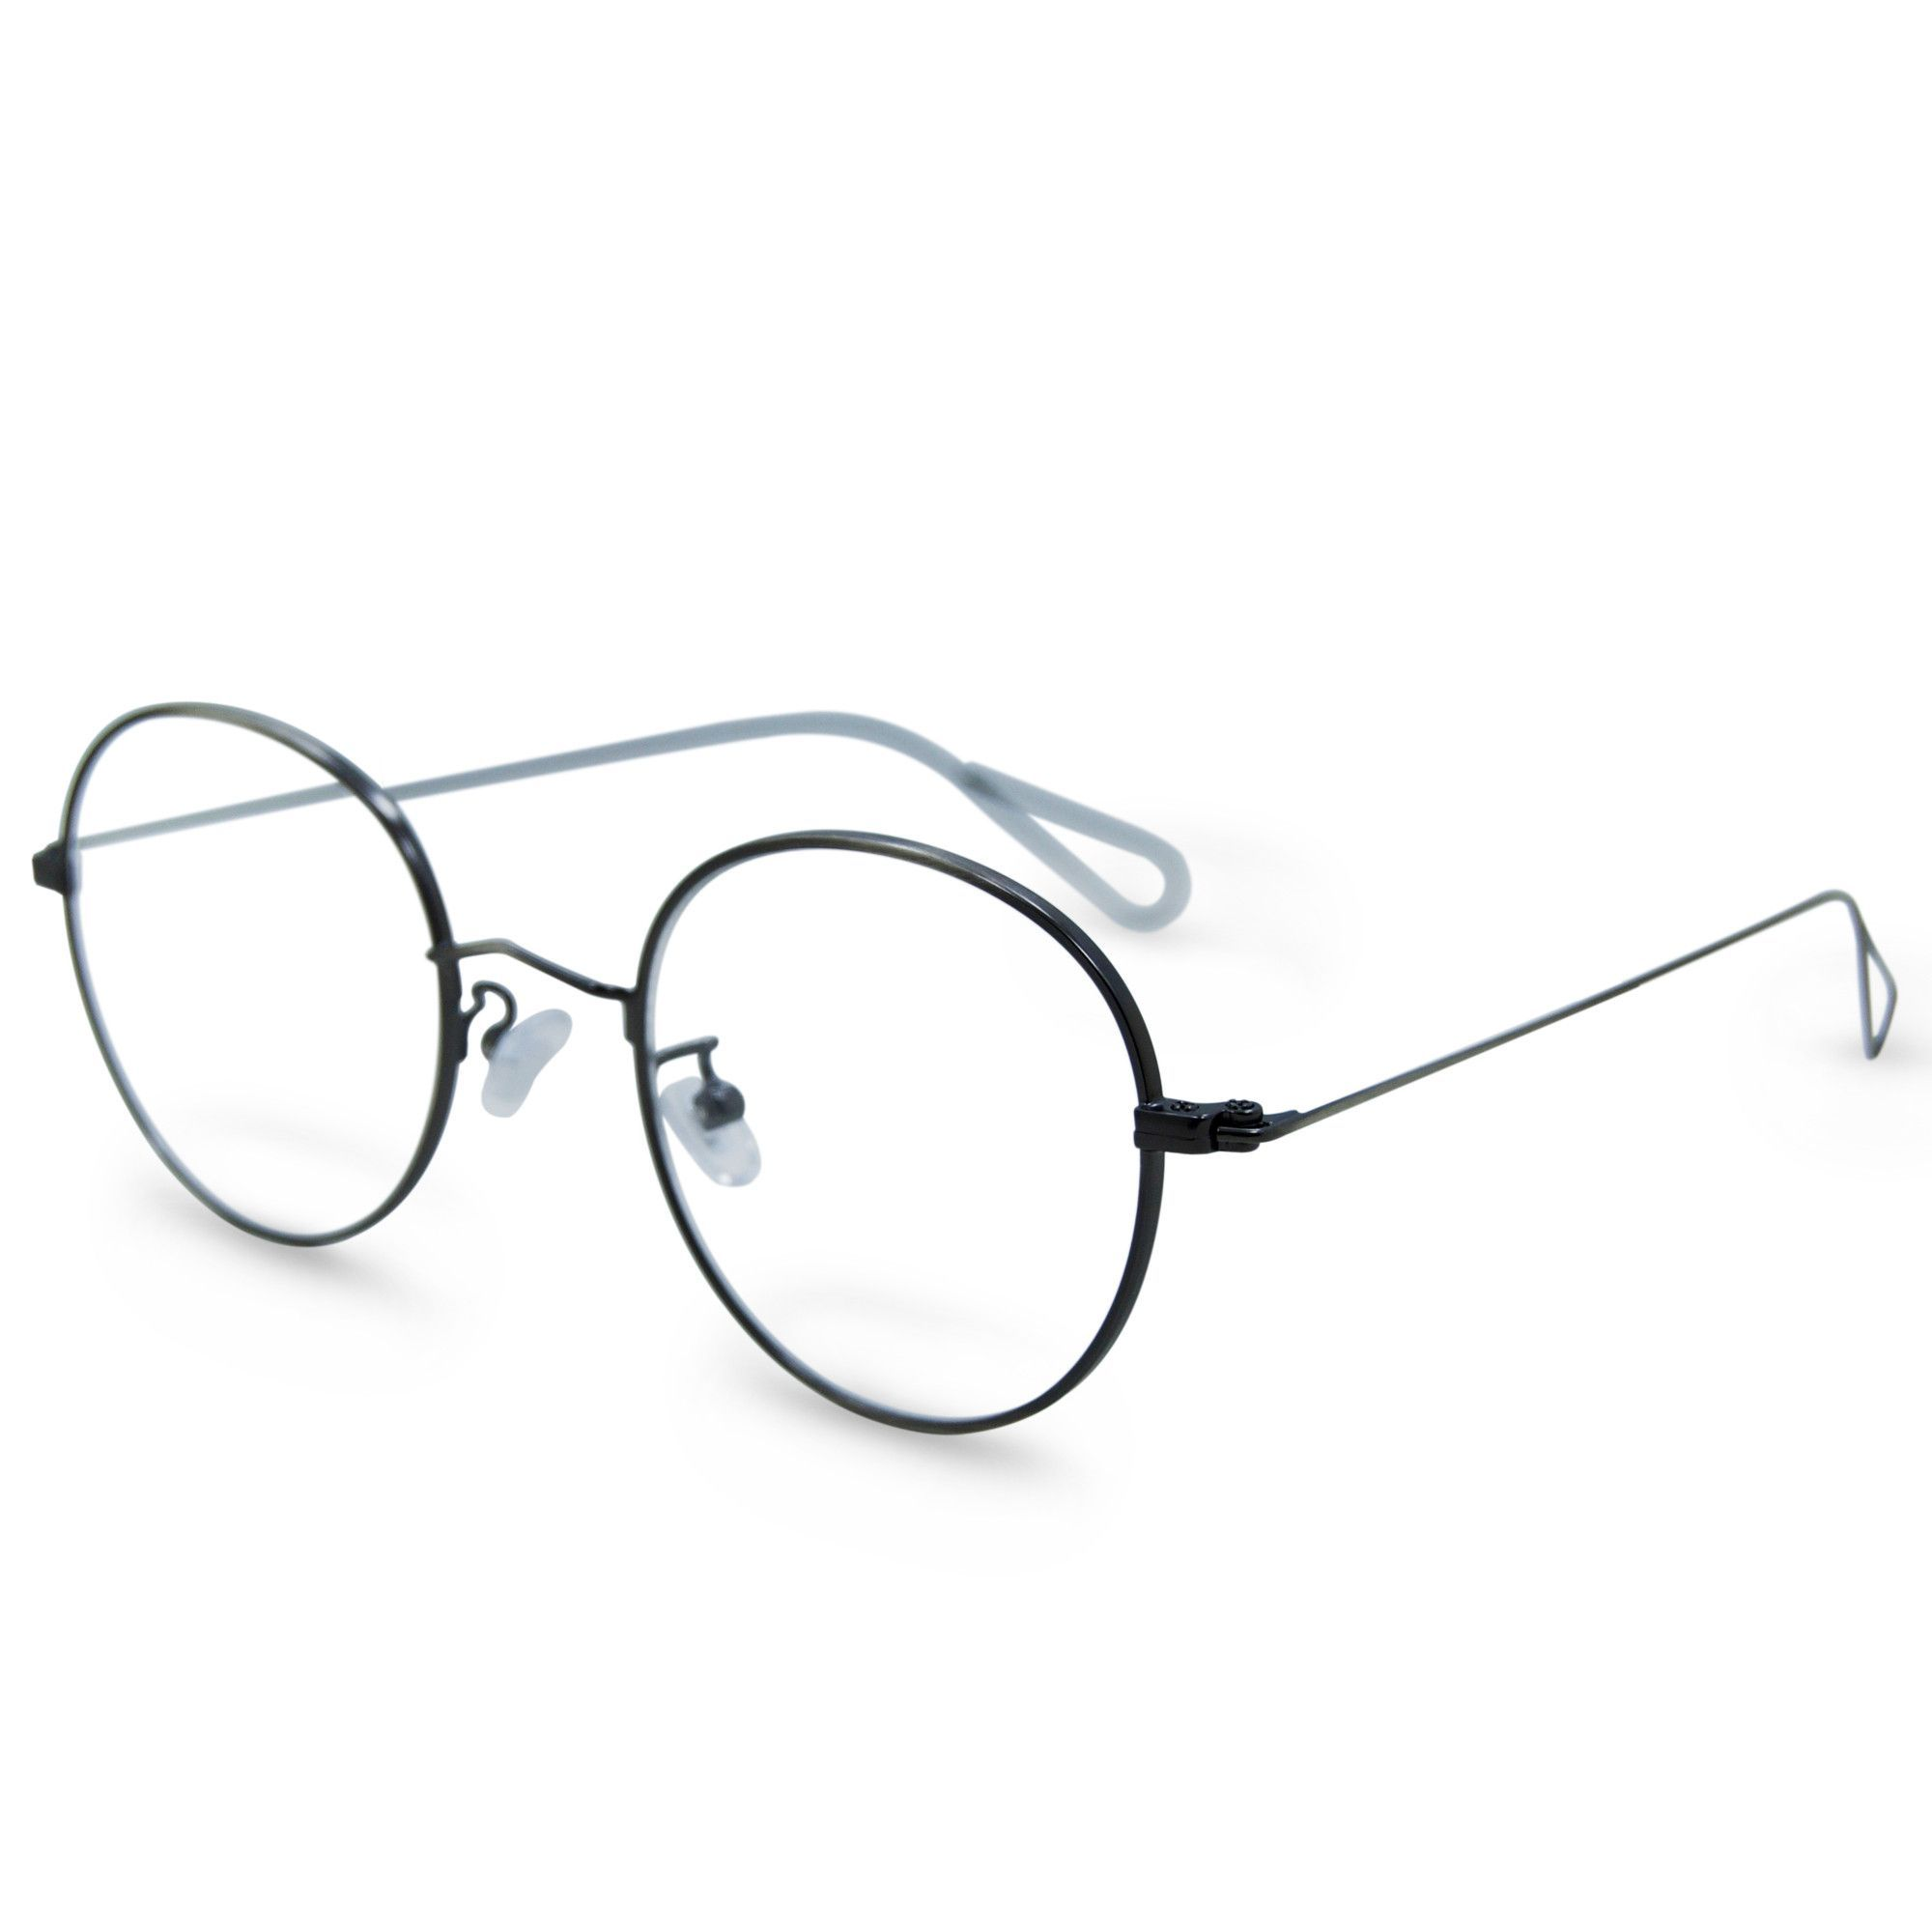 These Rx Able Reading Glasses Are Not Only Comfortable And Lightweight But Also Timeless And Stylish And If You Glasses Funky Glasses Prescription Eyeglasses